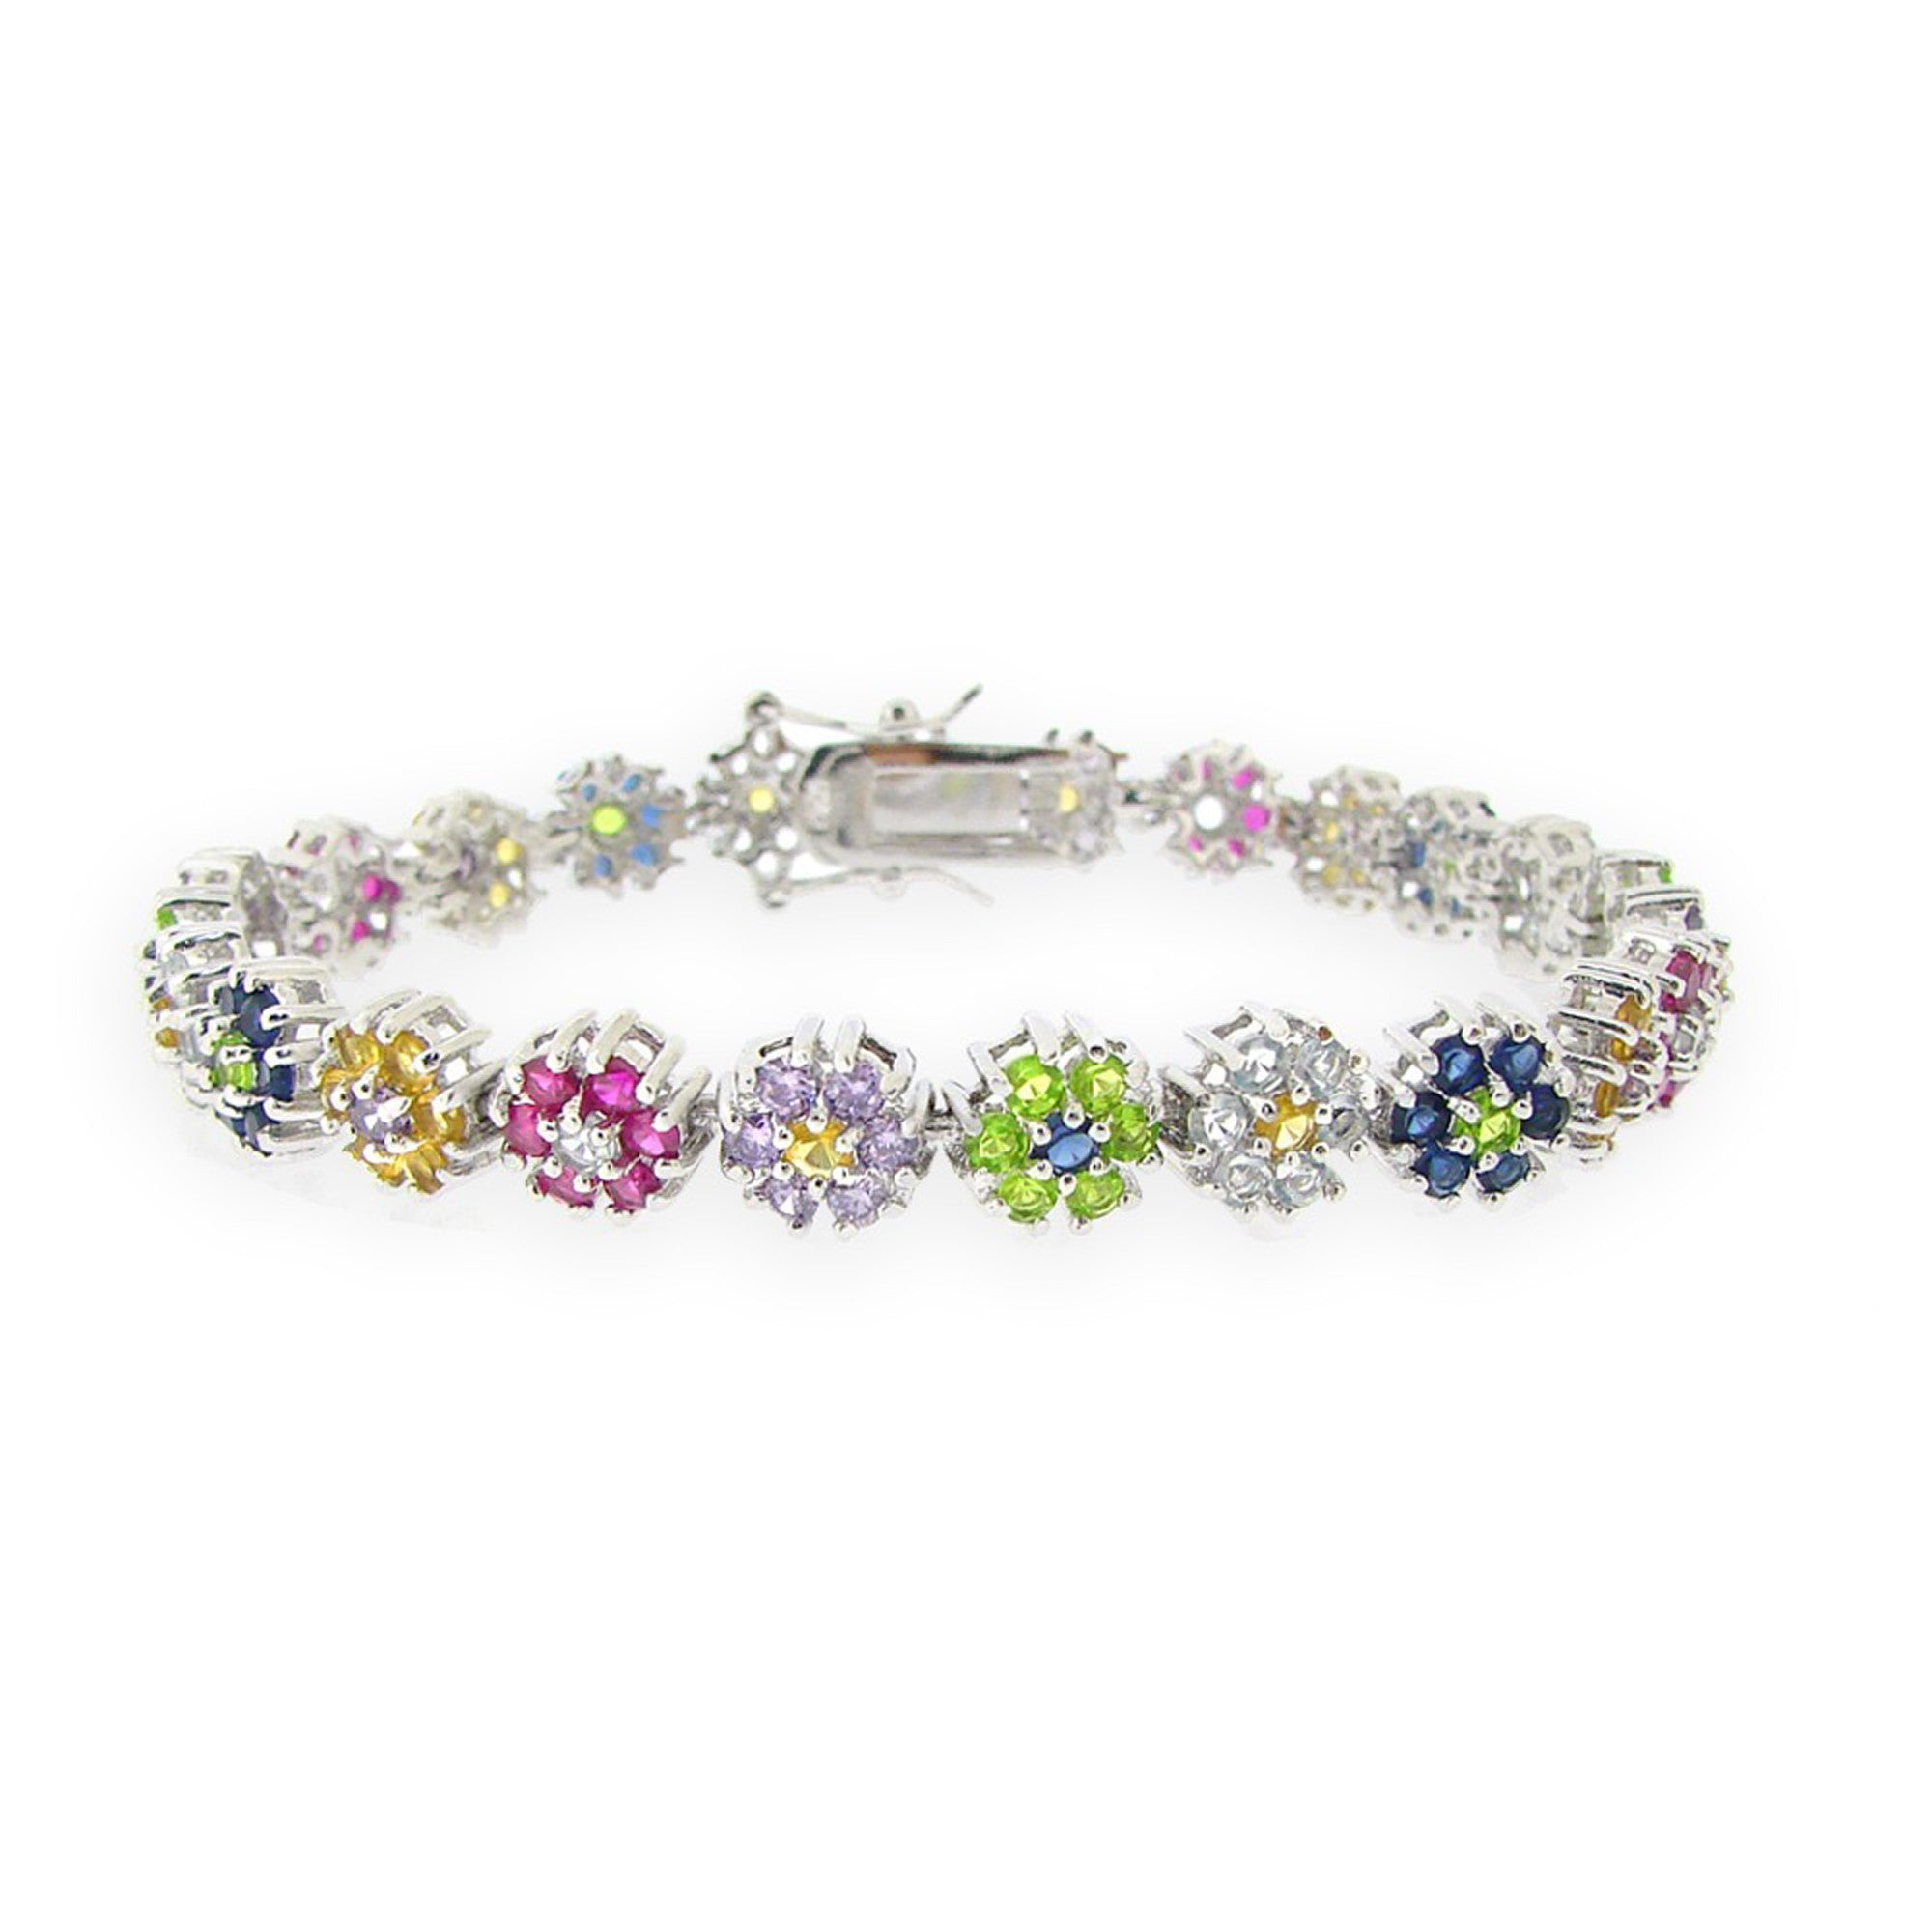 Flower Linked Bracelet With Cubic Zirconia - 7 Inches